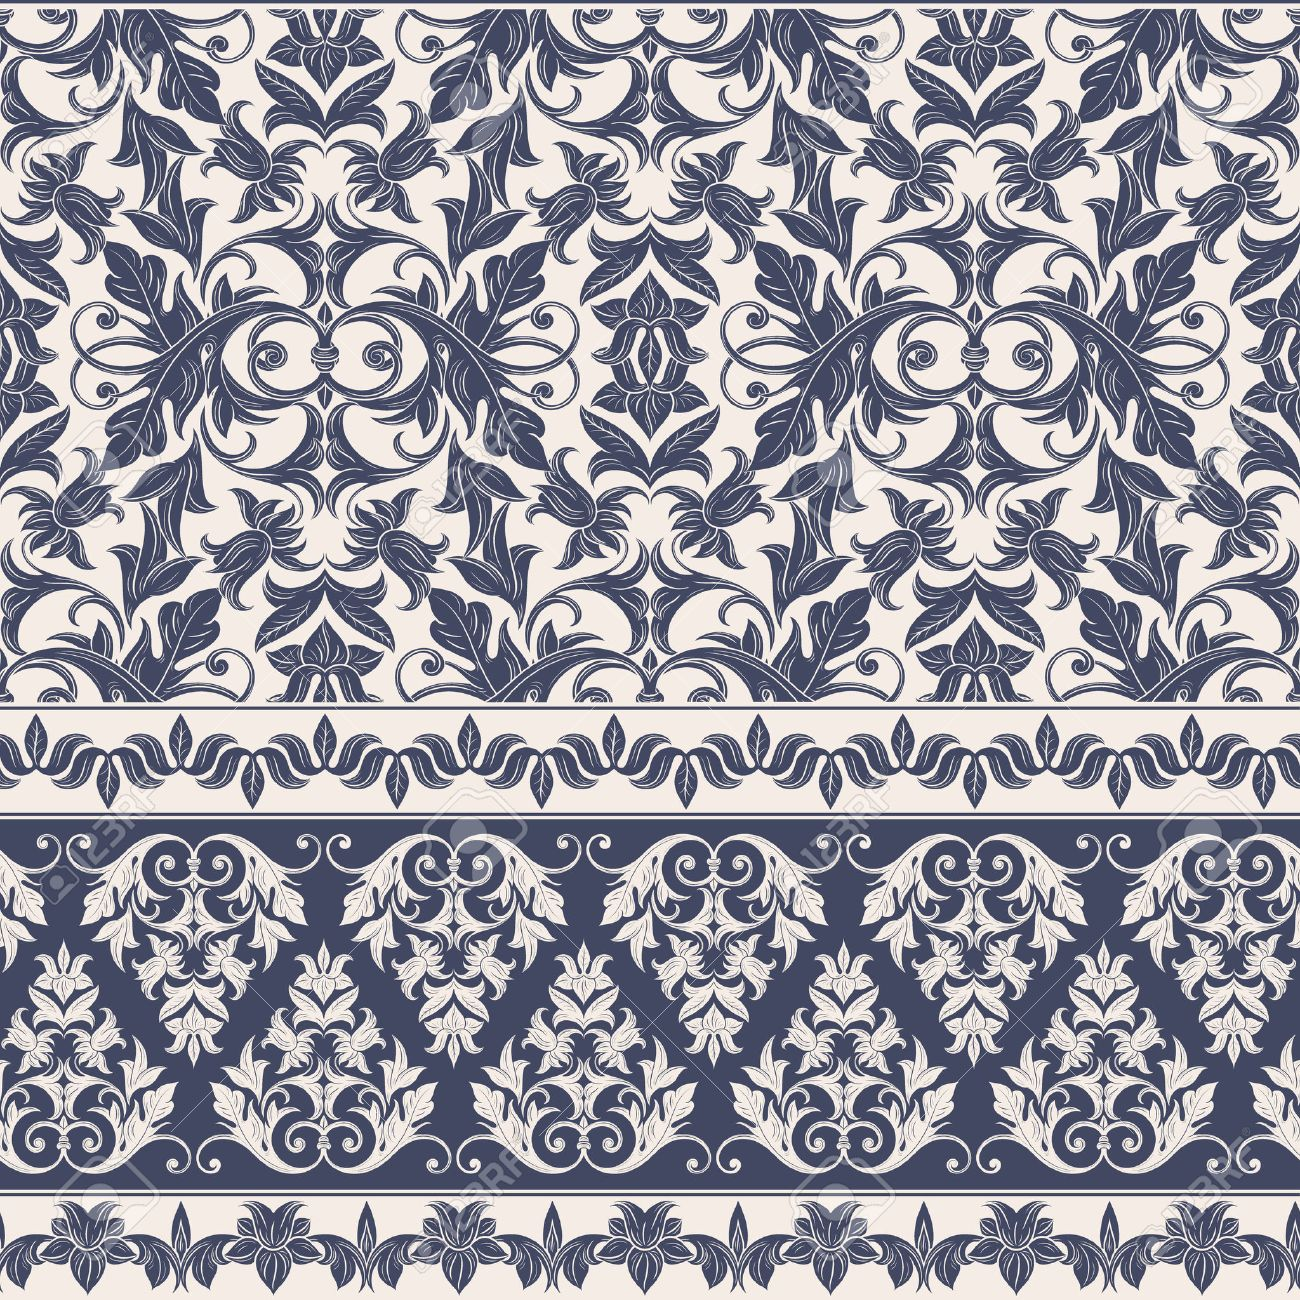 seamless decorative damask floral pattern royal wallpaper floral background best for invitations or announcements - Decorative Wallpaper